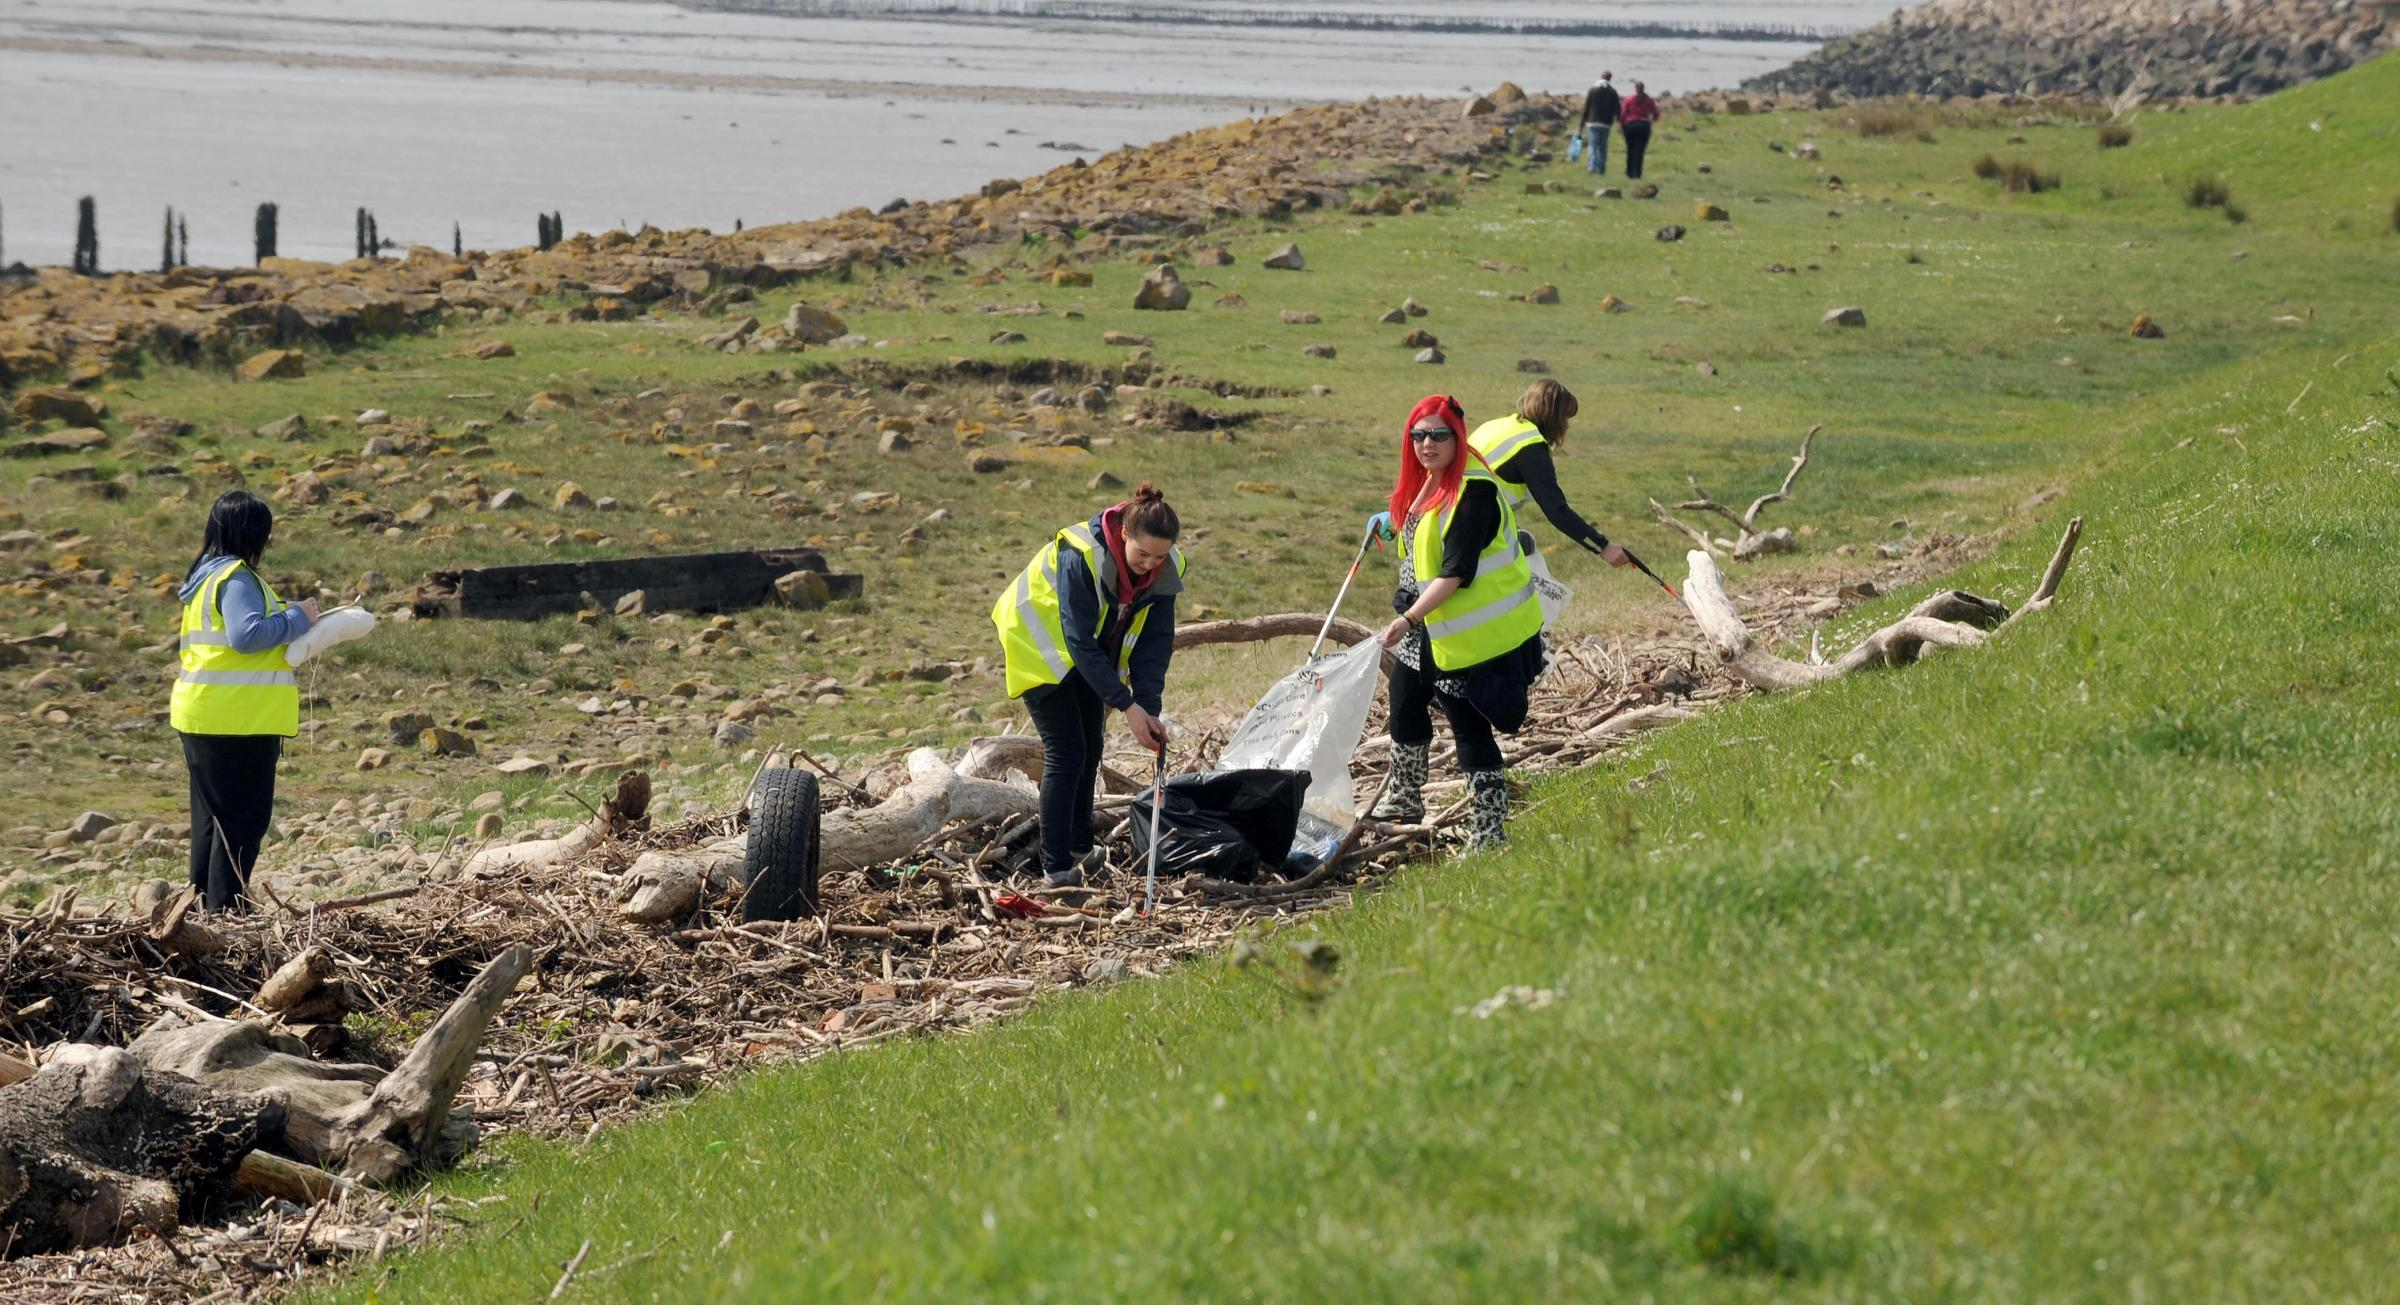 Volunteers get involved in beach clean up